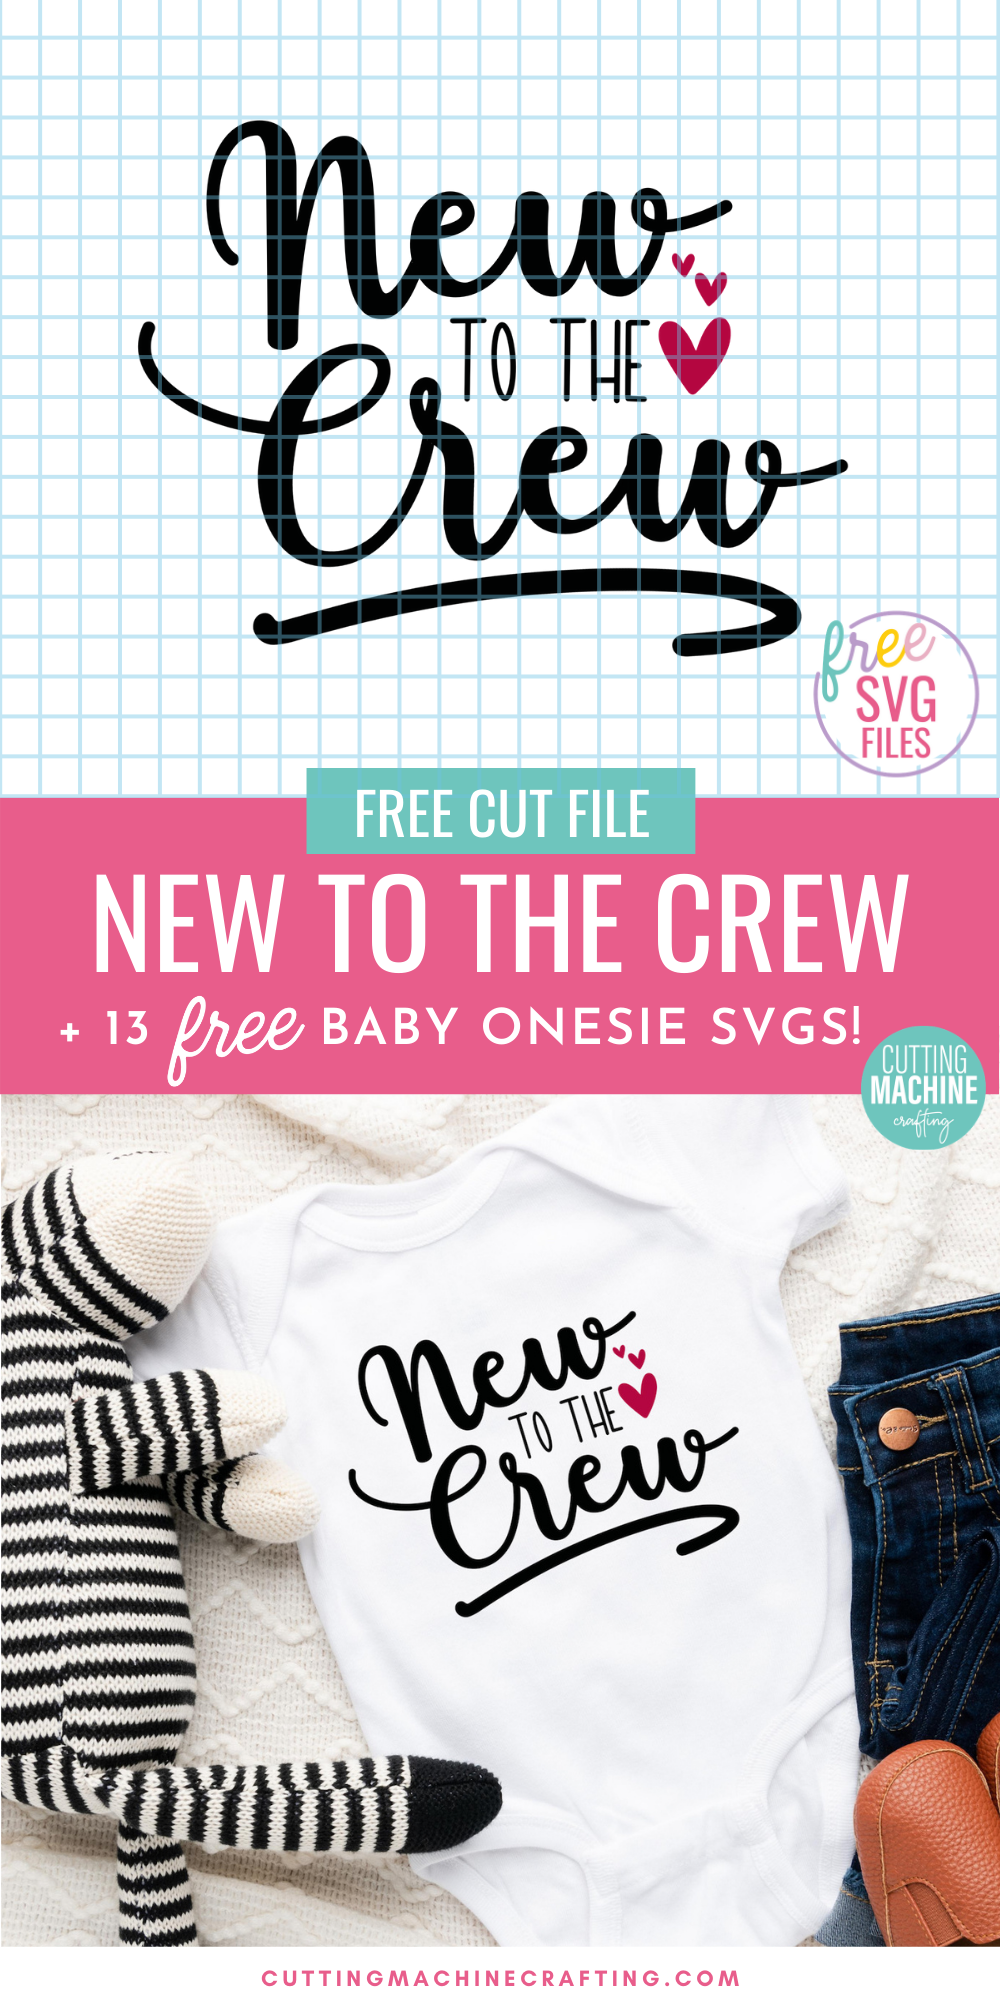 Make a ton of adorable DIY baby onesies for baby showers and newborn gifts using these 13 free Baby SVGs! These designs are just too cute for words! Use your Cricut Maker, Cricut Explore Air 2, Cricut Joy, Silhouette Cameo or other electronic cutting machine to craft DIY baby gifts! Includes a New To The Crew SVG that's perfect for newborn photos!